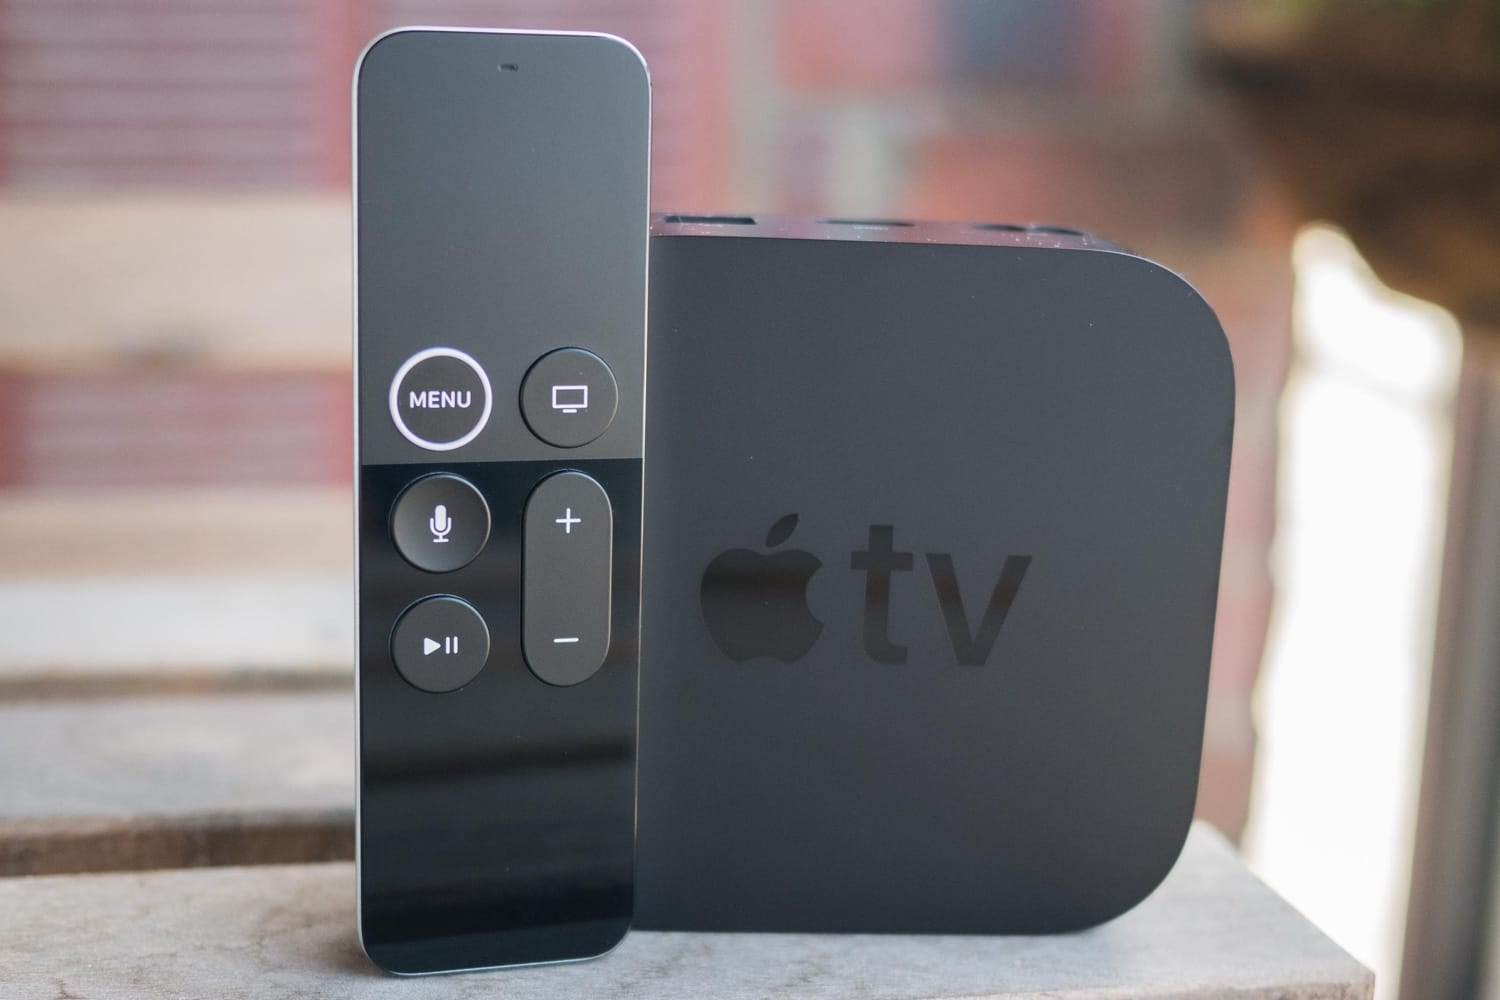 Специалисты поведали о дефиците нового Apple TV